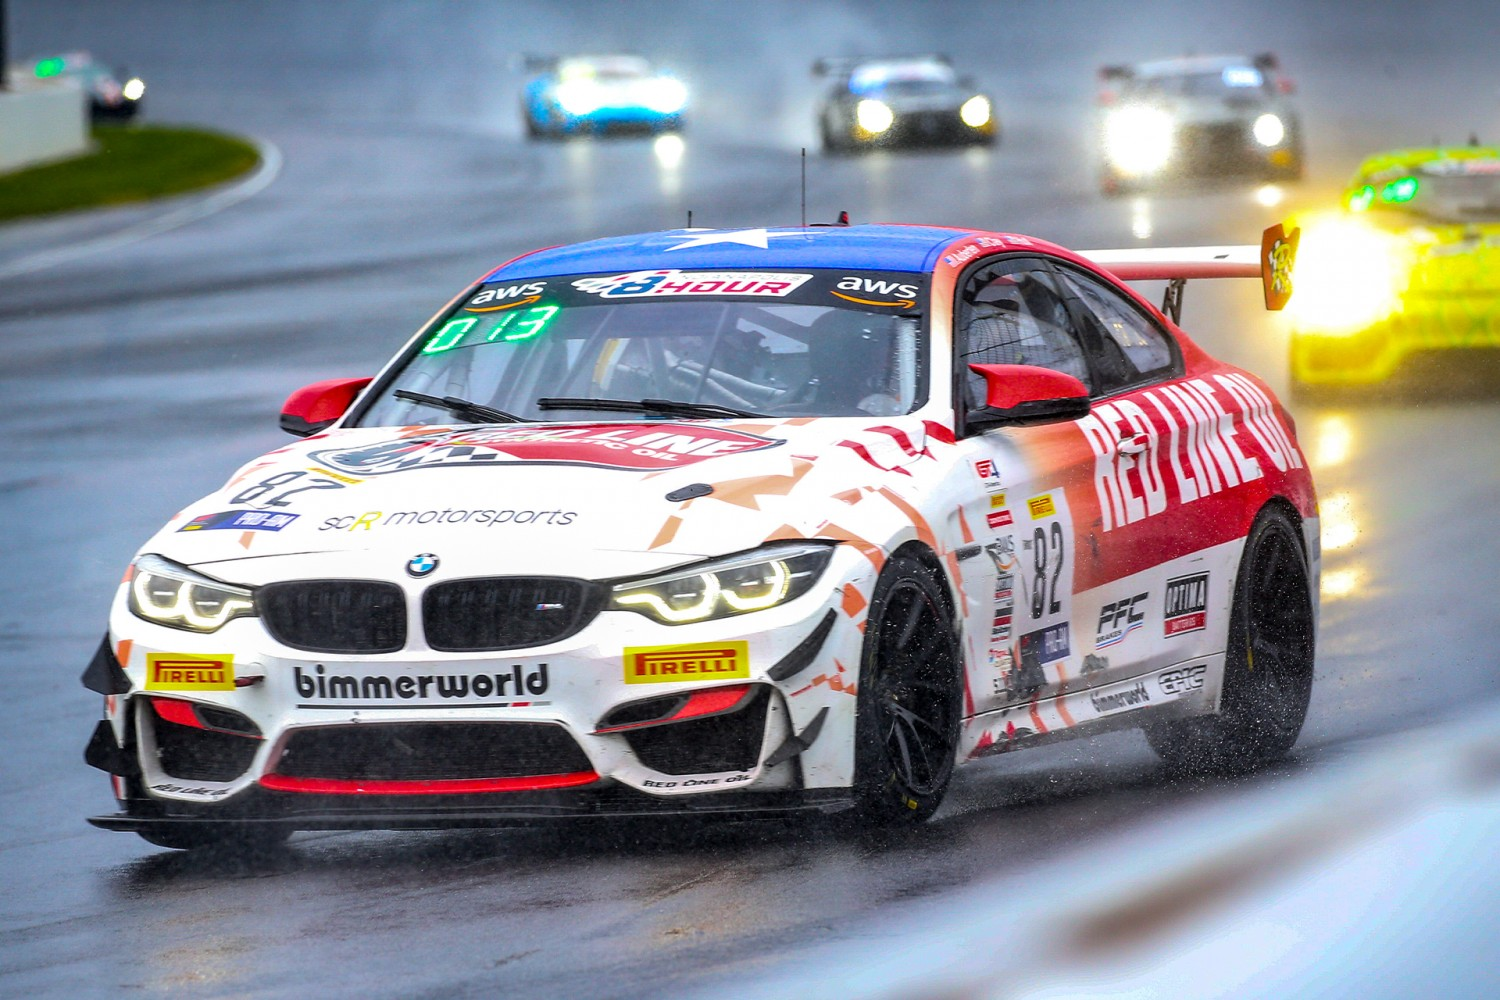 BimmerWorld Racing Wins GT4 Indianapolis 8 Hour Race at the Brickyard